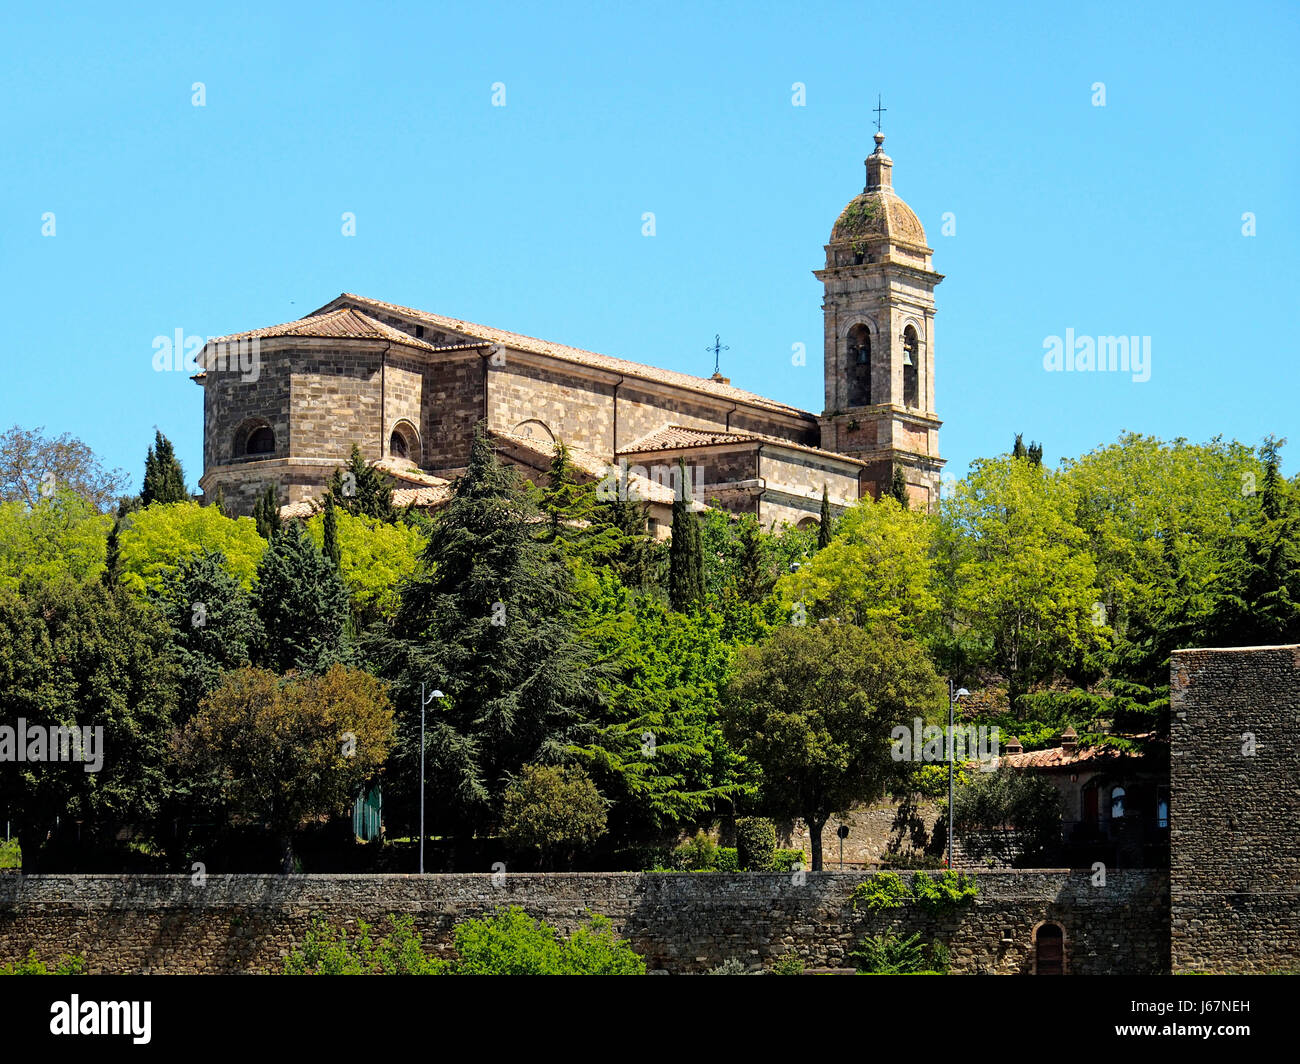 San Salvatore Roman Catholic Cathedral within the stone walls of the Tuscan hilltop town of Montalcino, Italy. - Stock Image